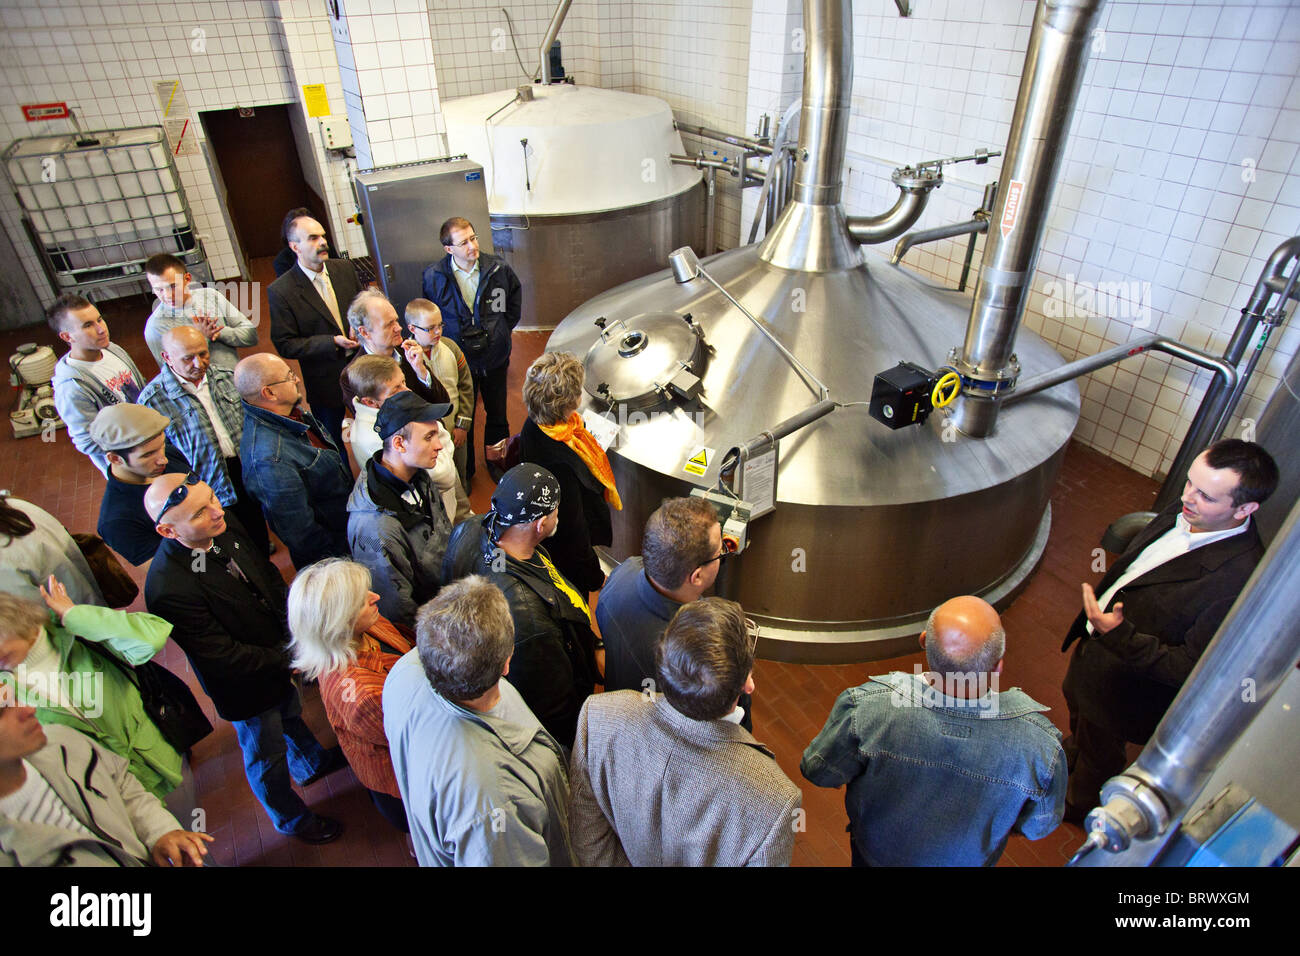 Tourists visiting a brewery in Poland, Zabrze - Stock Image